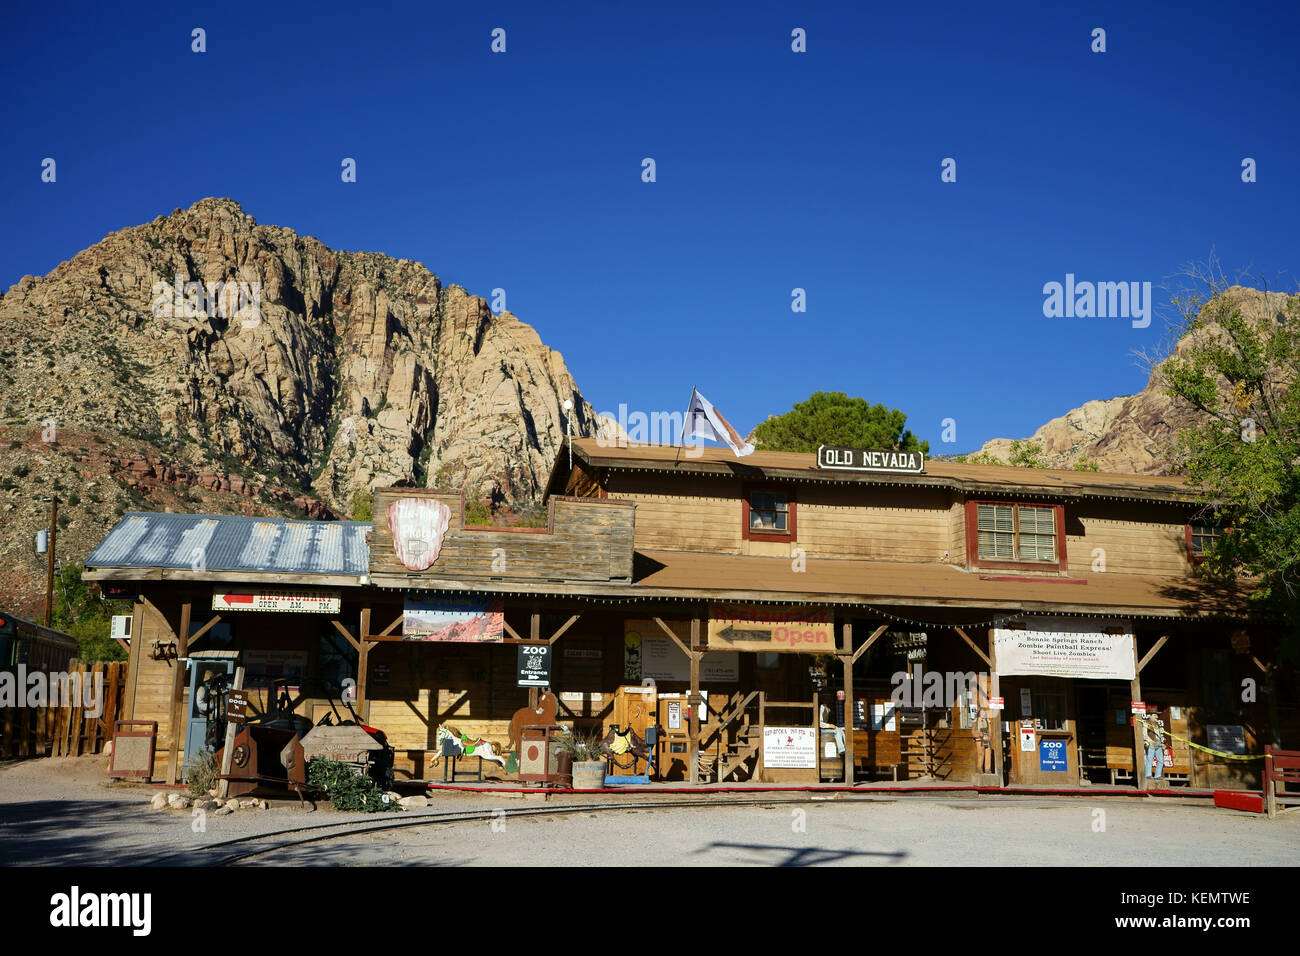 Antiques store and entertainement center of Bonnie Springs resort, Red Rock Canyon, Nevada - Stock Image